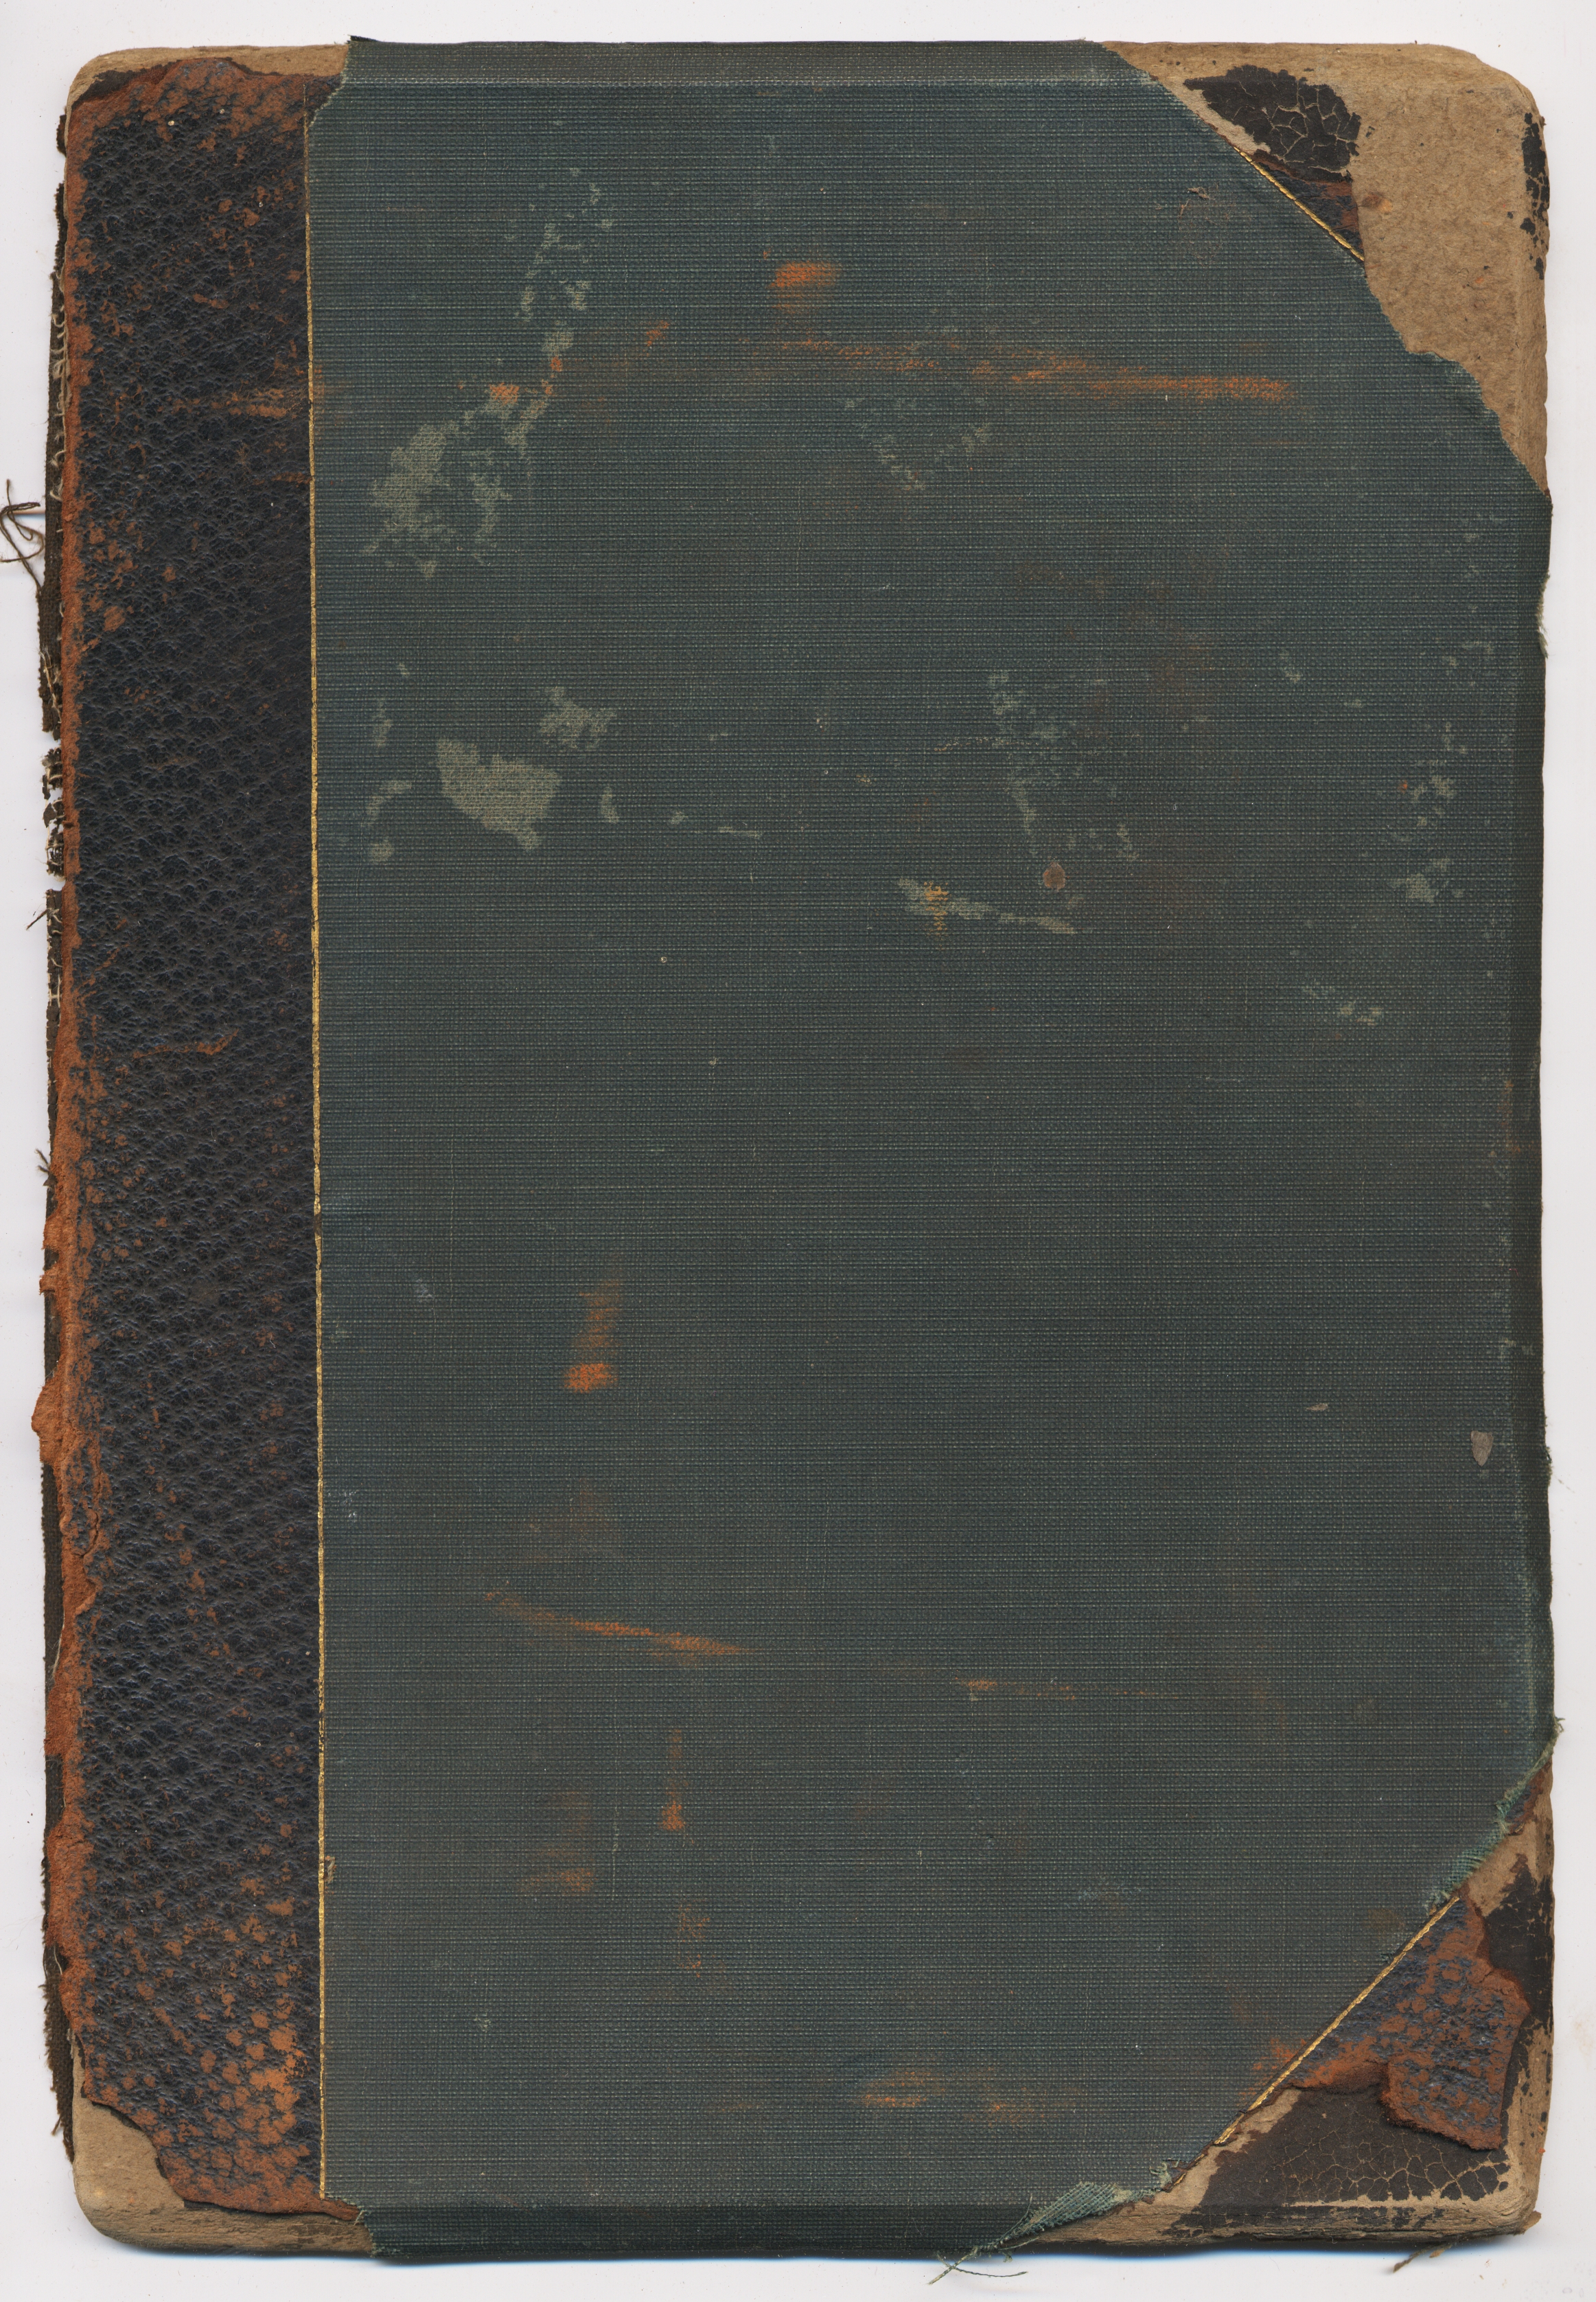 Free Old Book Cover Texture : Free black bumpy old book cover texture l t